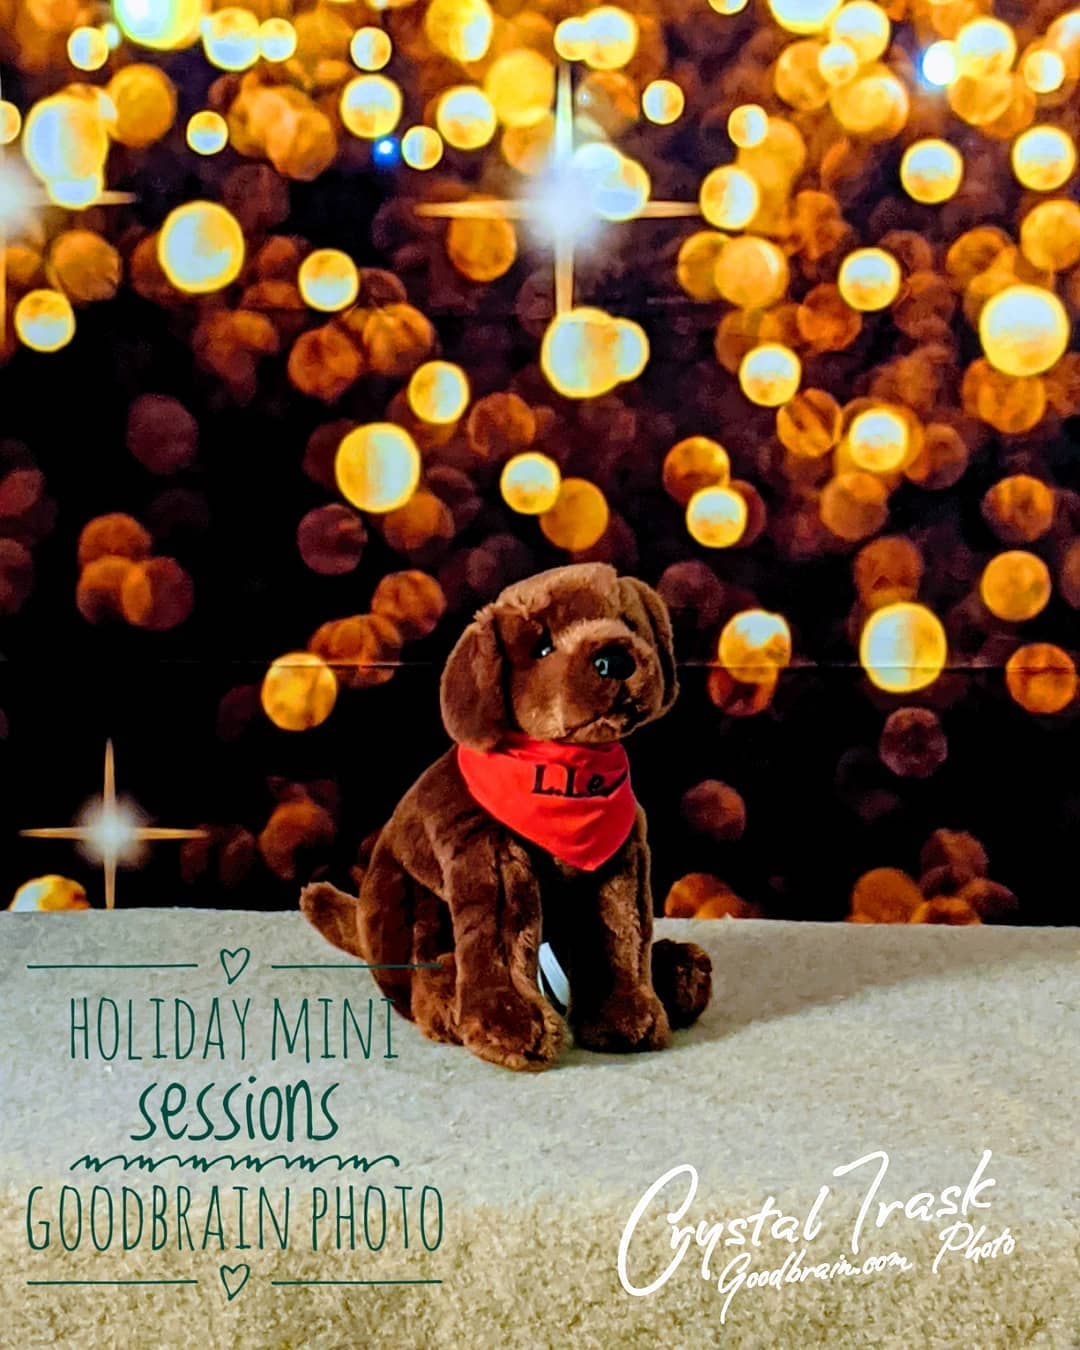 Holiday Mini Sessions 2019…